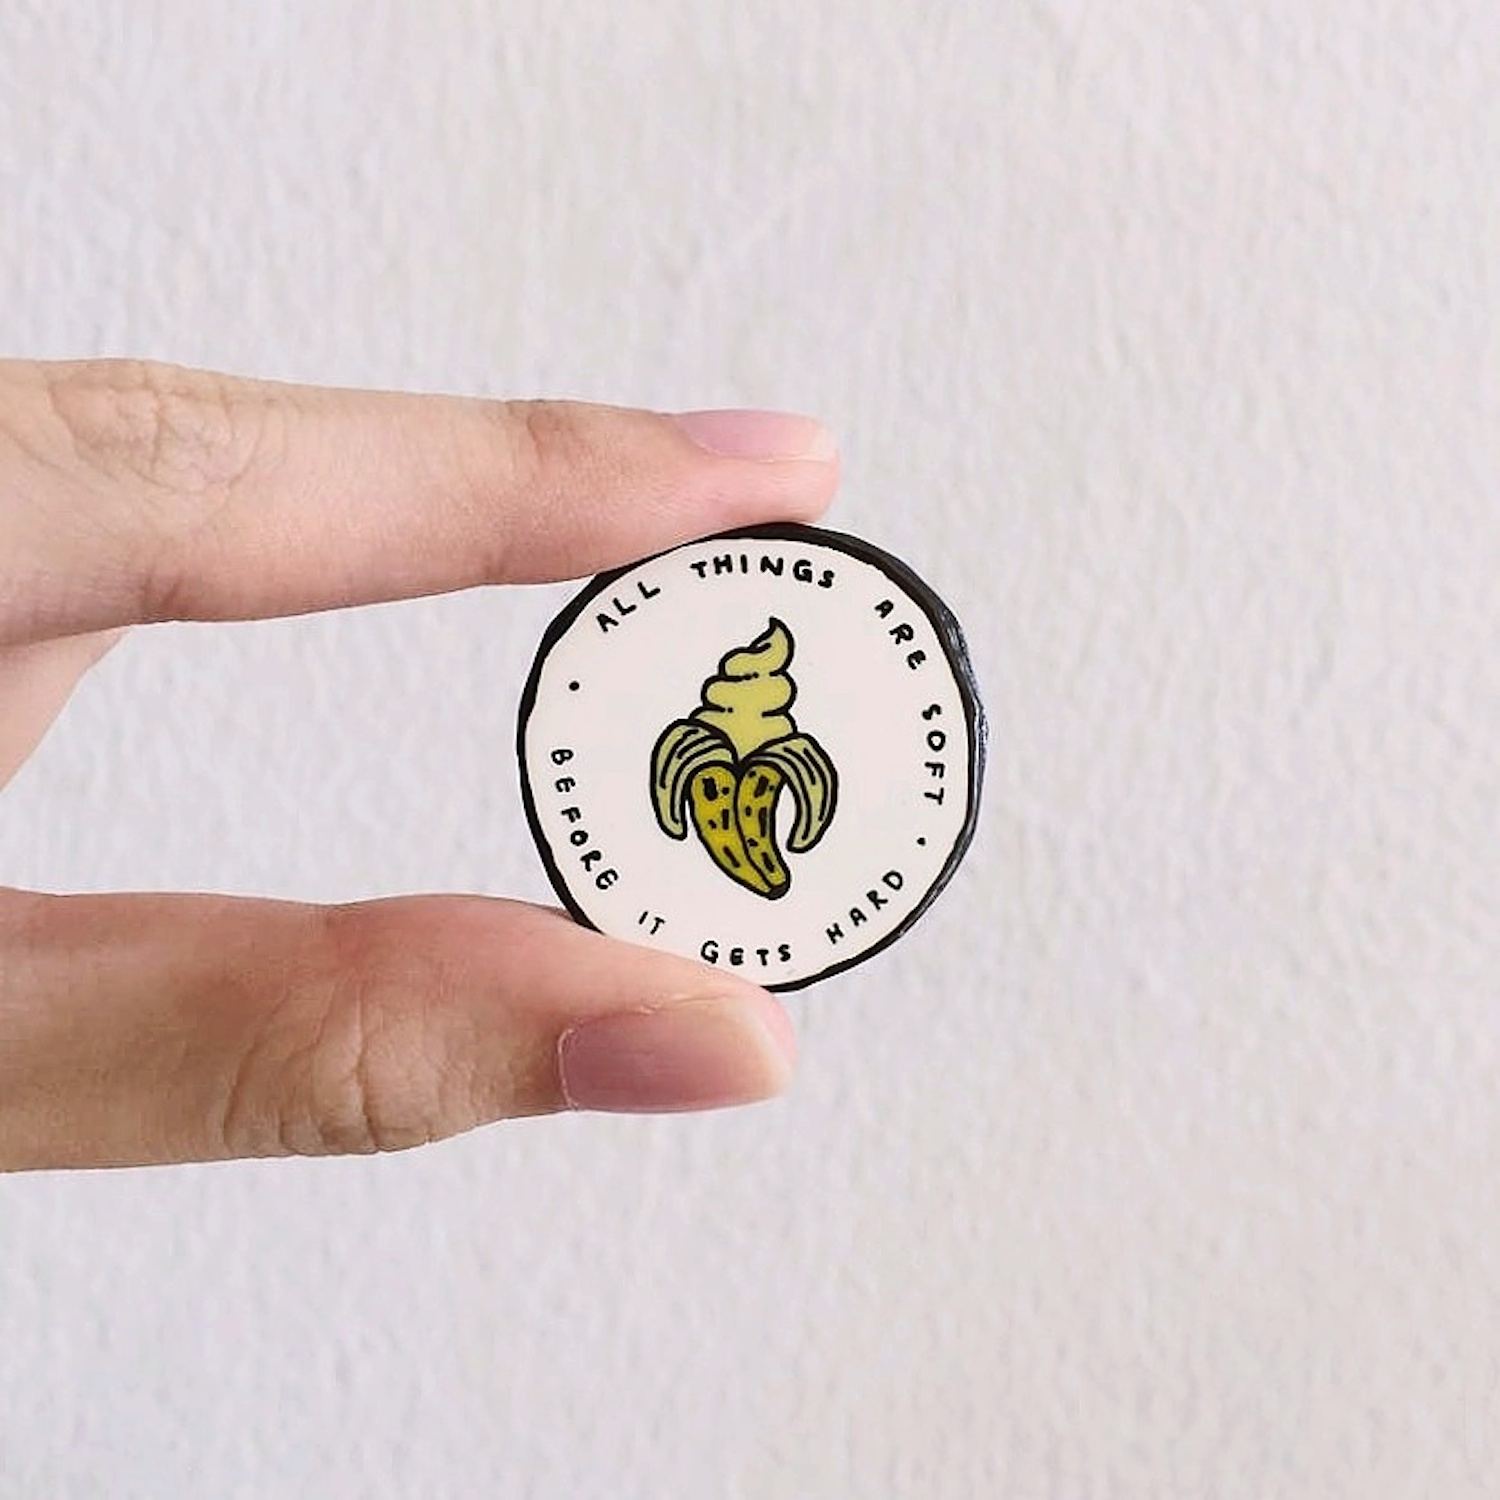 A Merdeka Collaboration by Third Culture, Pantun Pins ...